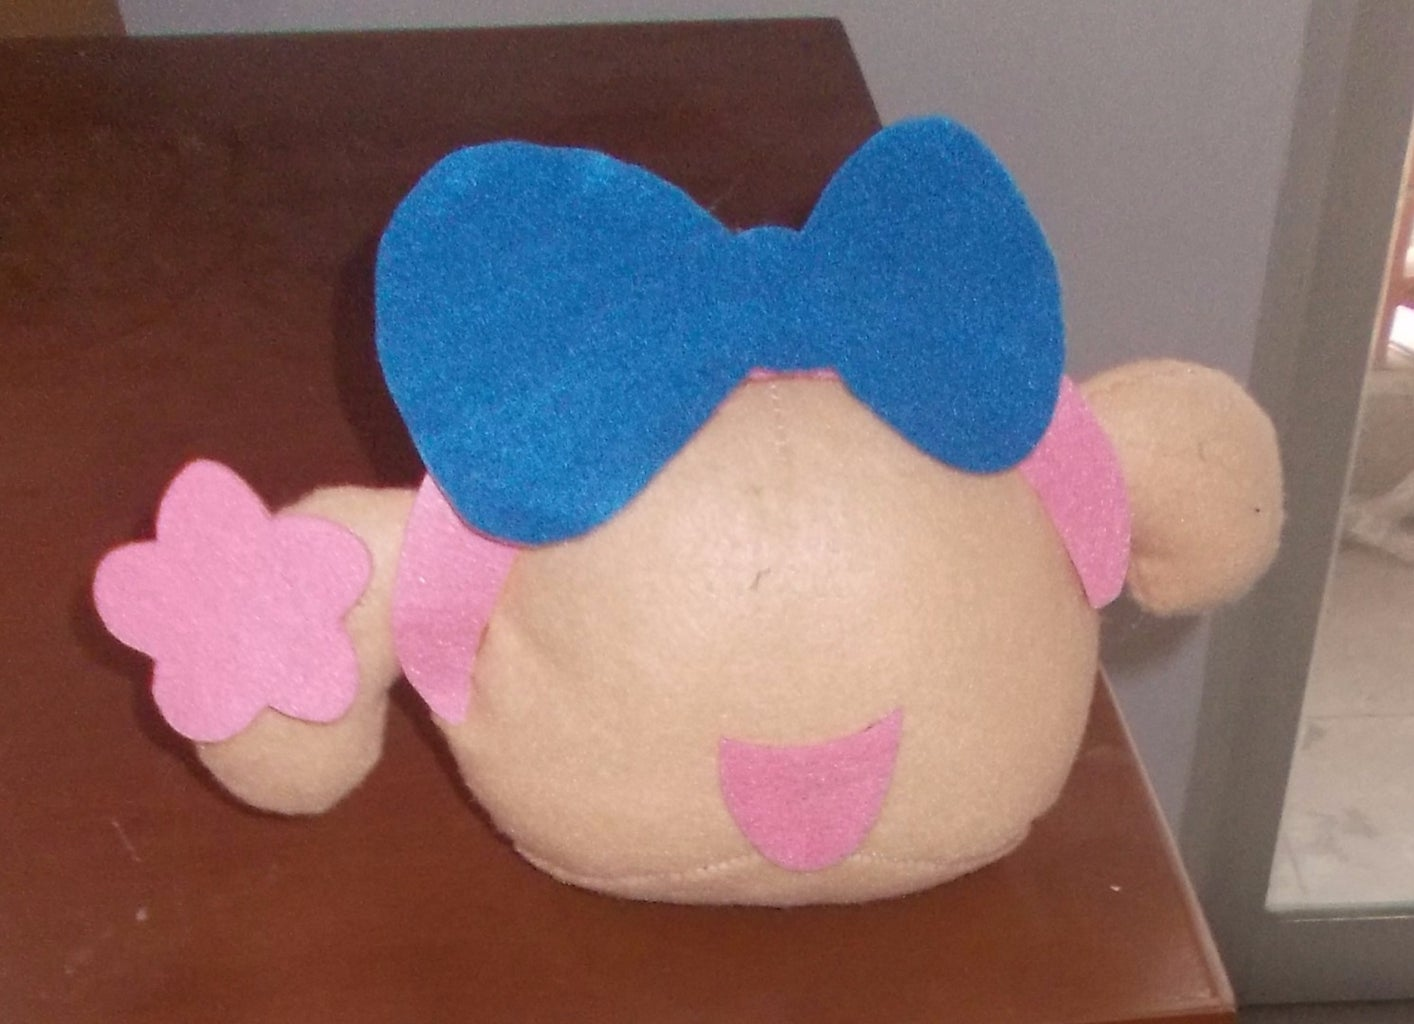 Cut Out the Mouth and Sew It Up Like This Picture.